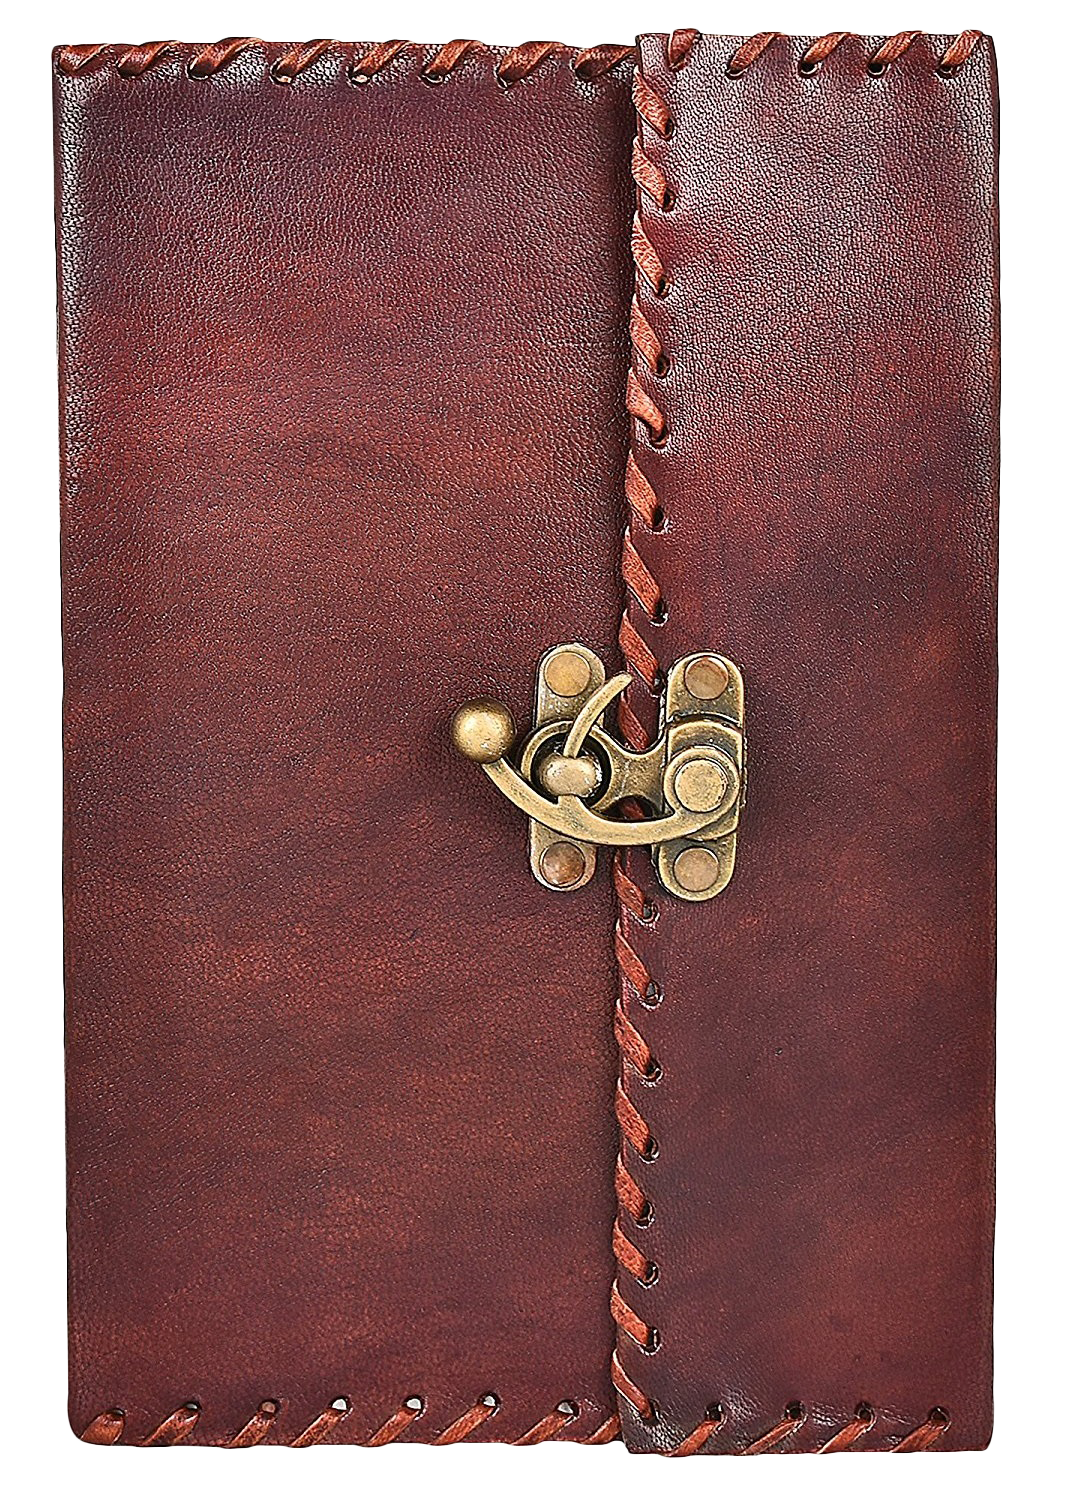 Creative Handmade Leather Journal Buckle Closure